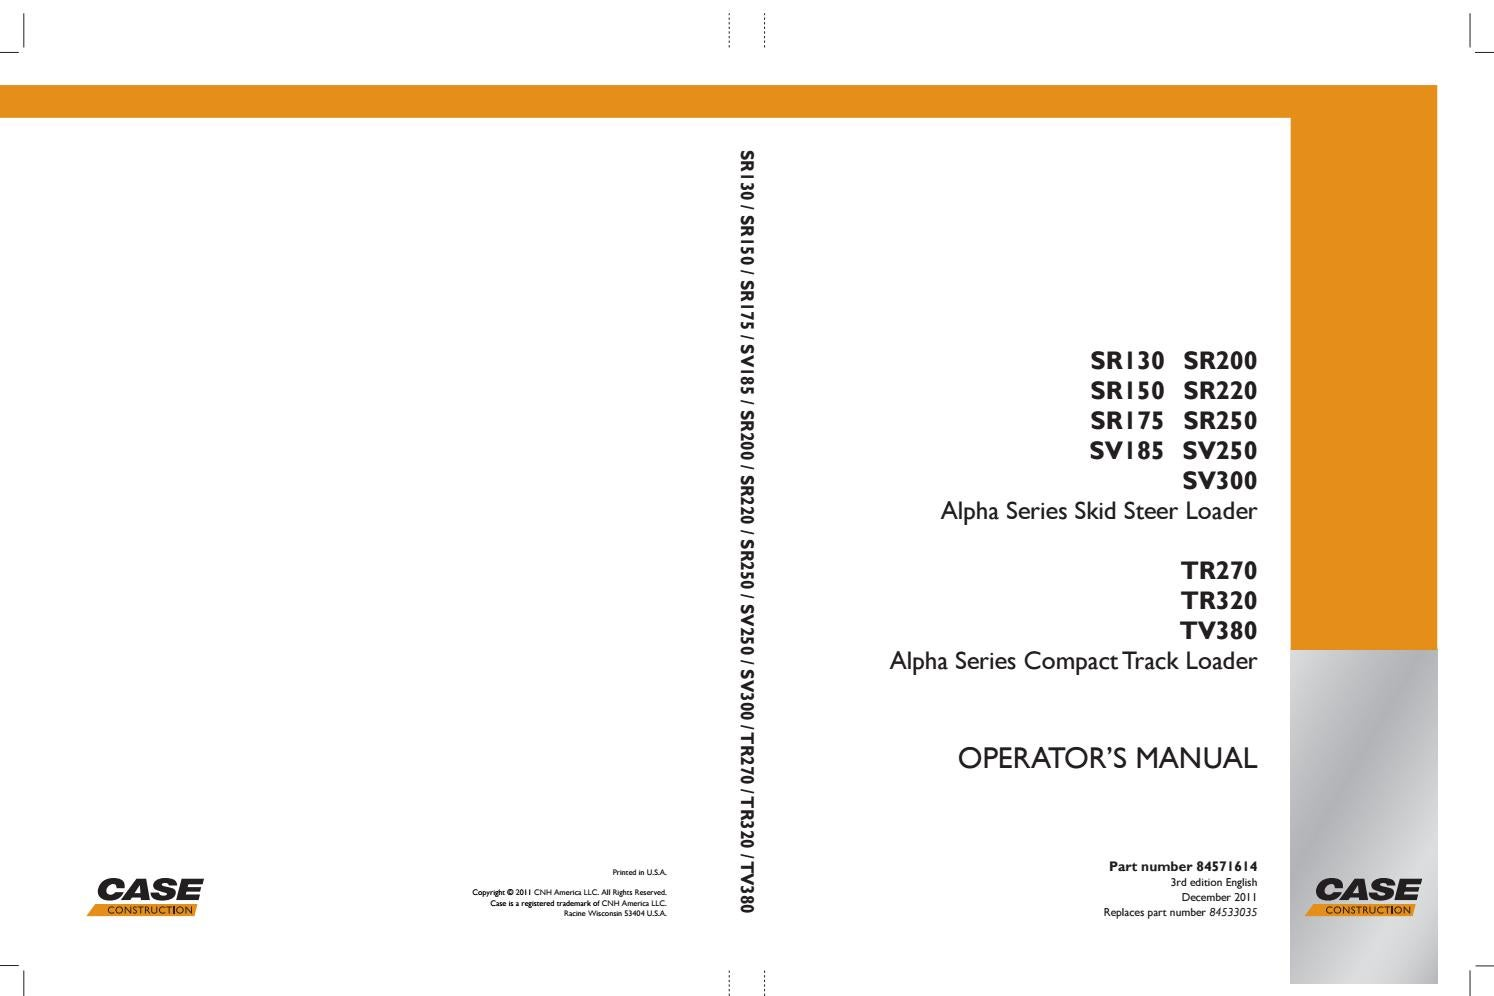 Operators manual : Alpha Series Skid Steer Loader and